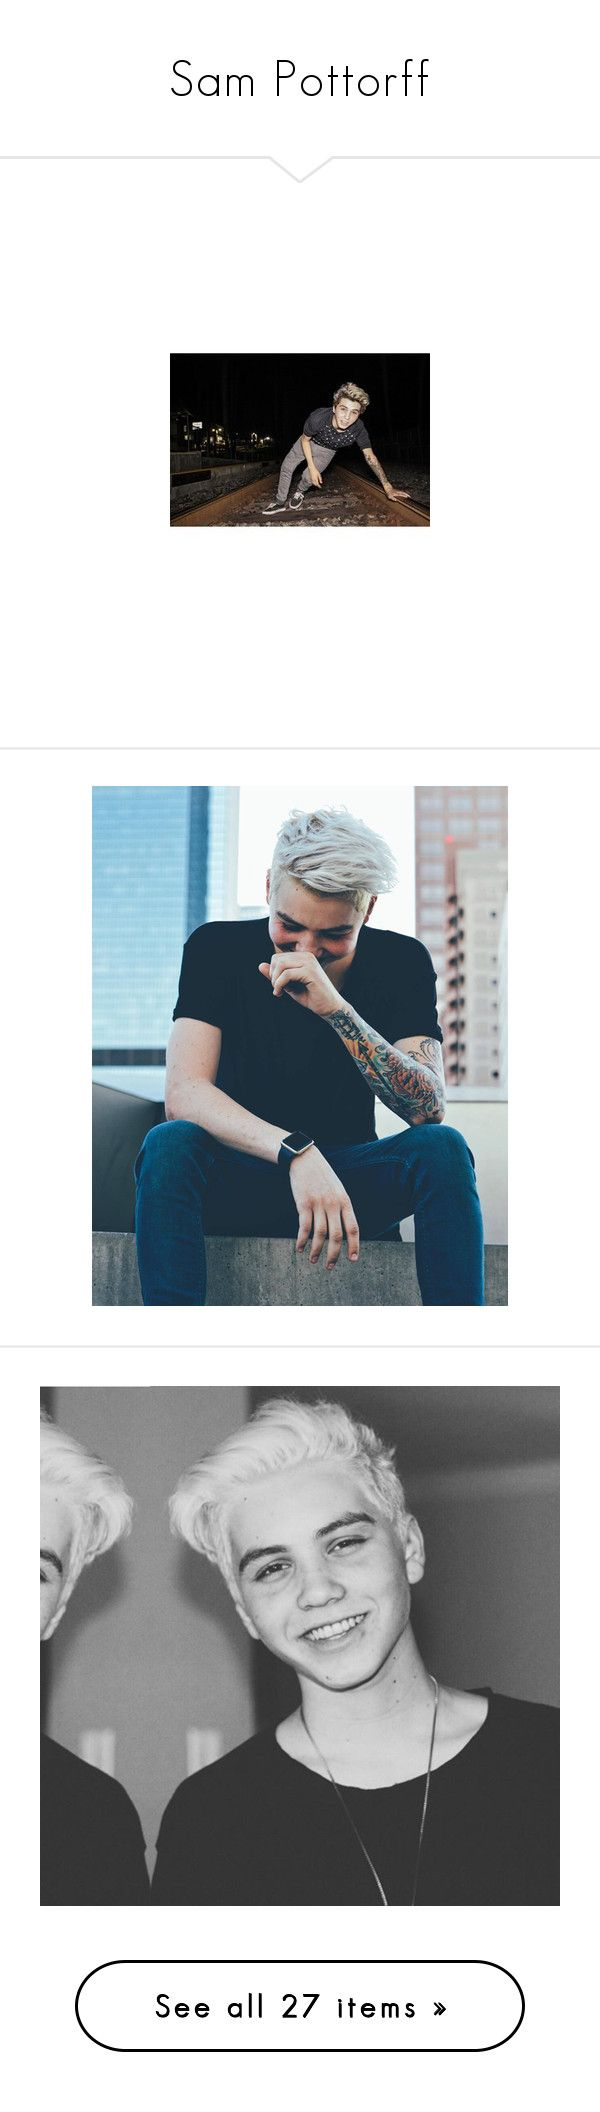 """""""Sam Pottorff"""" by beingmyselfaf ❤ liked on Polyvore featuring o2l, sampottorff, people, our2ndlife, pics, sam, other and sam pottorff"""